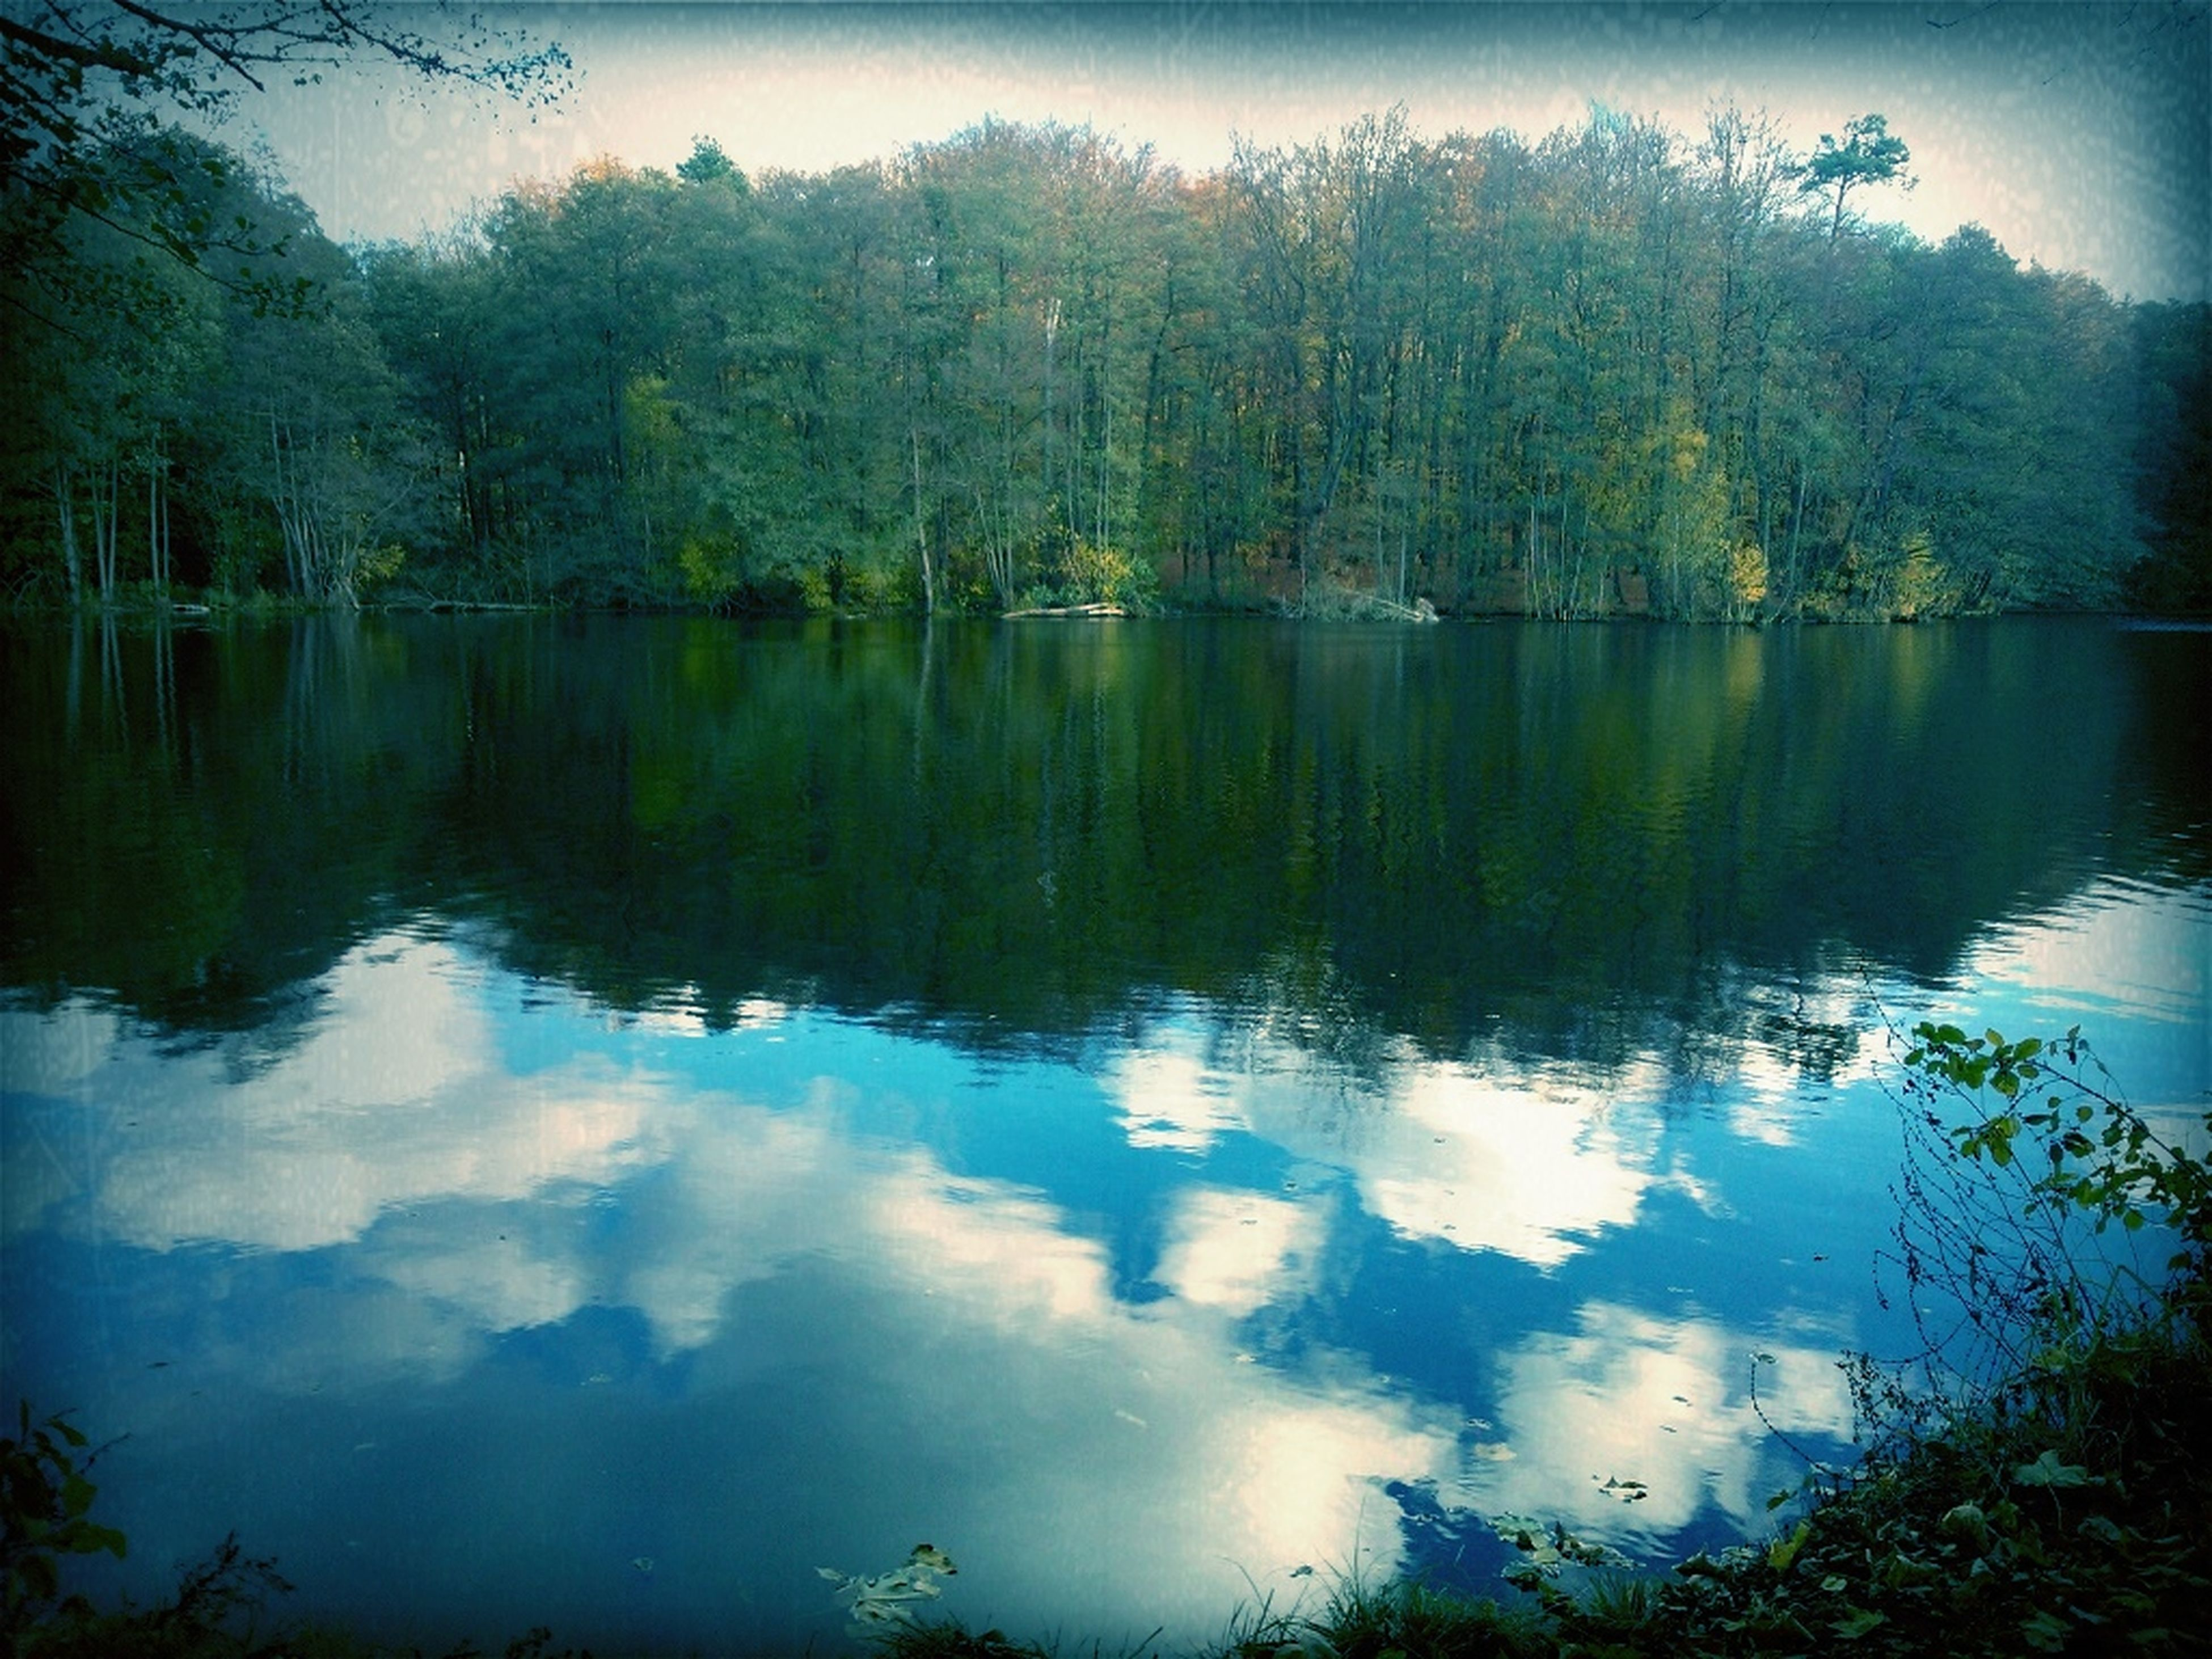 reflection, tree, water, lake, tranquil scene, tranquility, scenics, beauty in nature, sky, nature, waterfront, idyllic, standing water, forest, calm, outdoors, no people, non-urban scene, day, growth